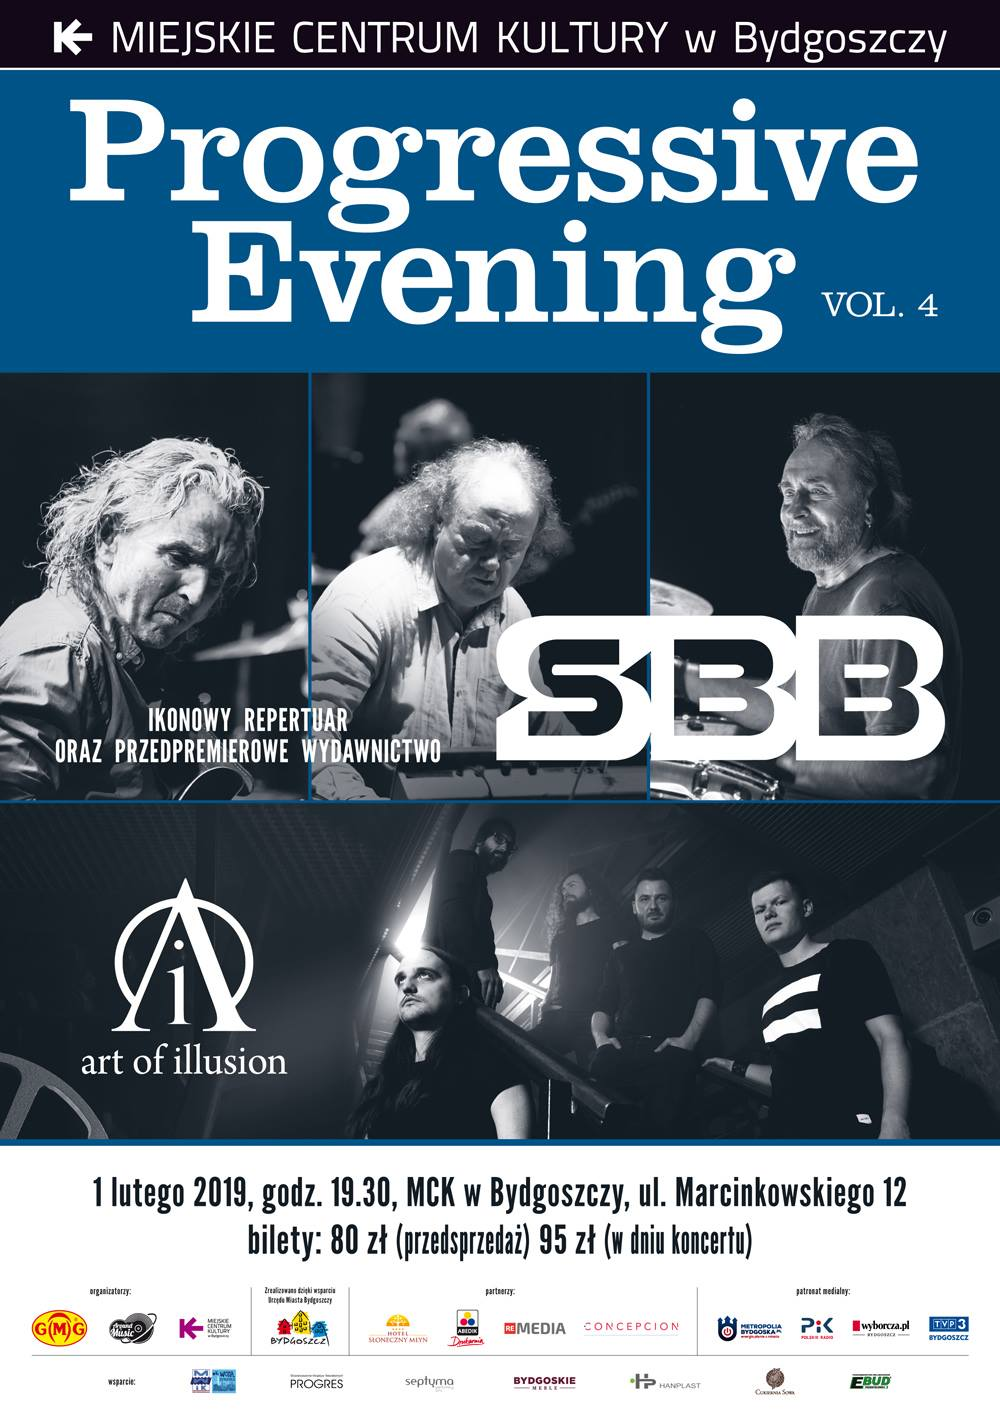 Art of Illusion i SBB, Progressive Evening vol. 4